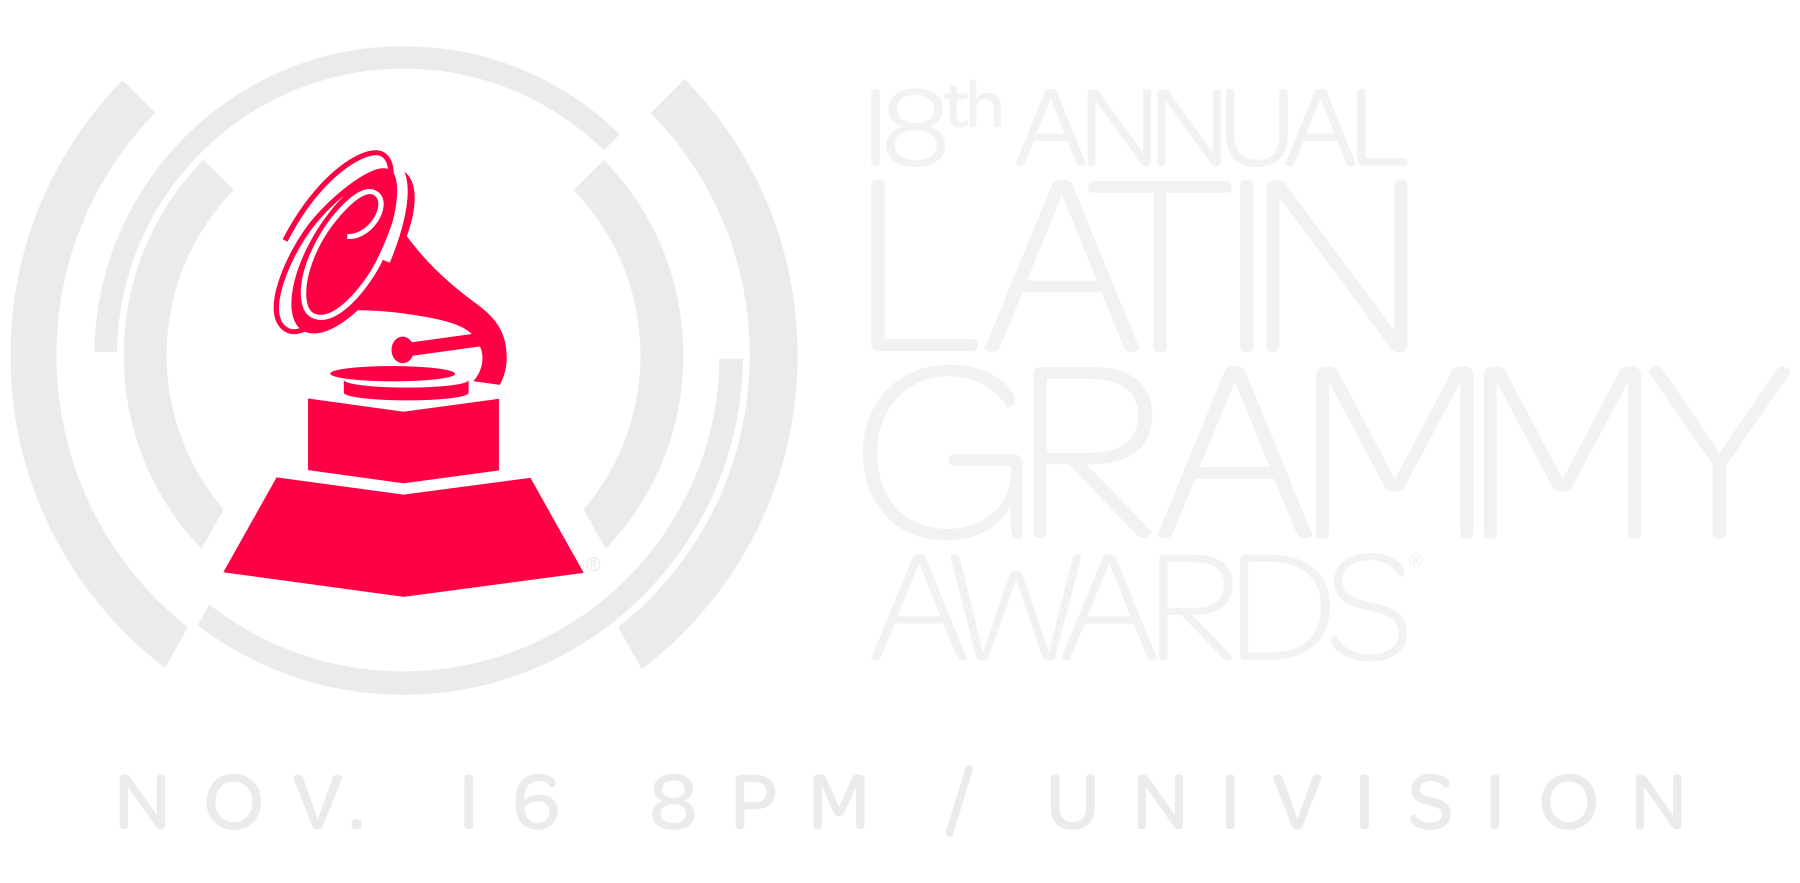 Billboard latinmusic awards 2018 logo png. Aimp events th annual